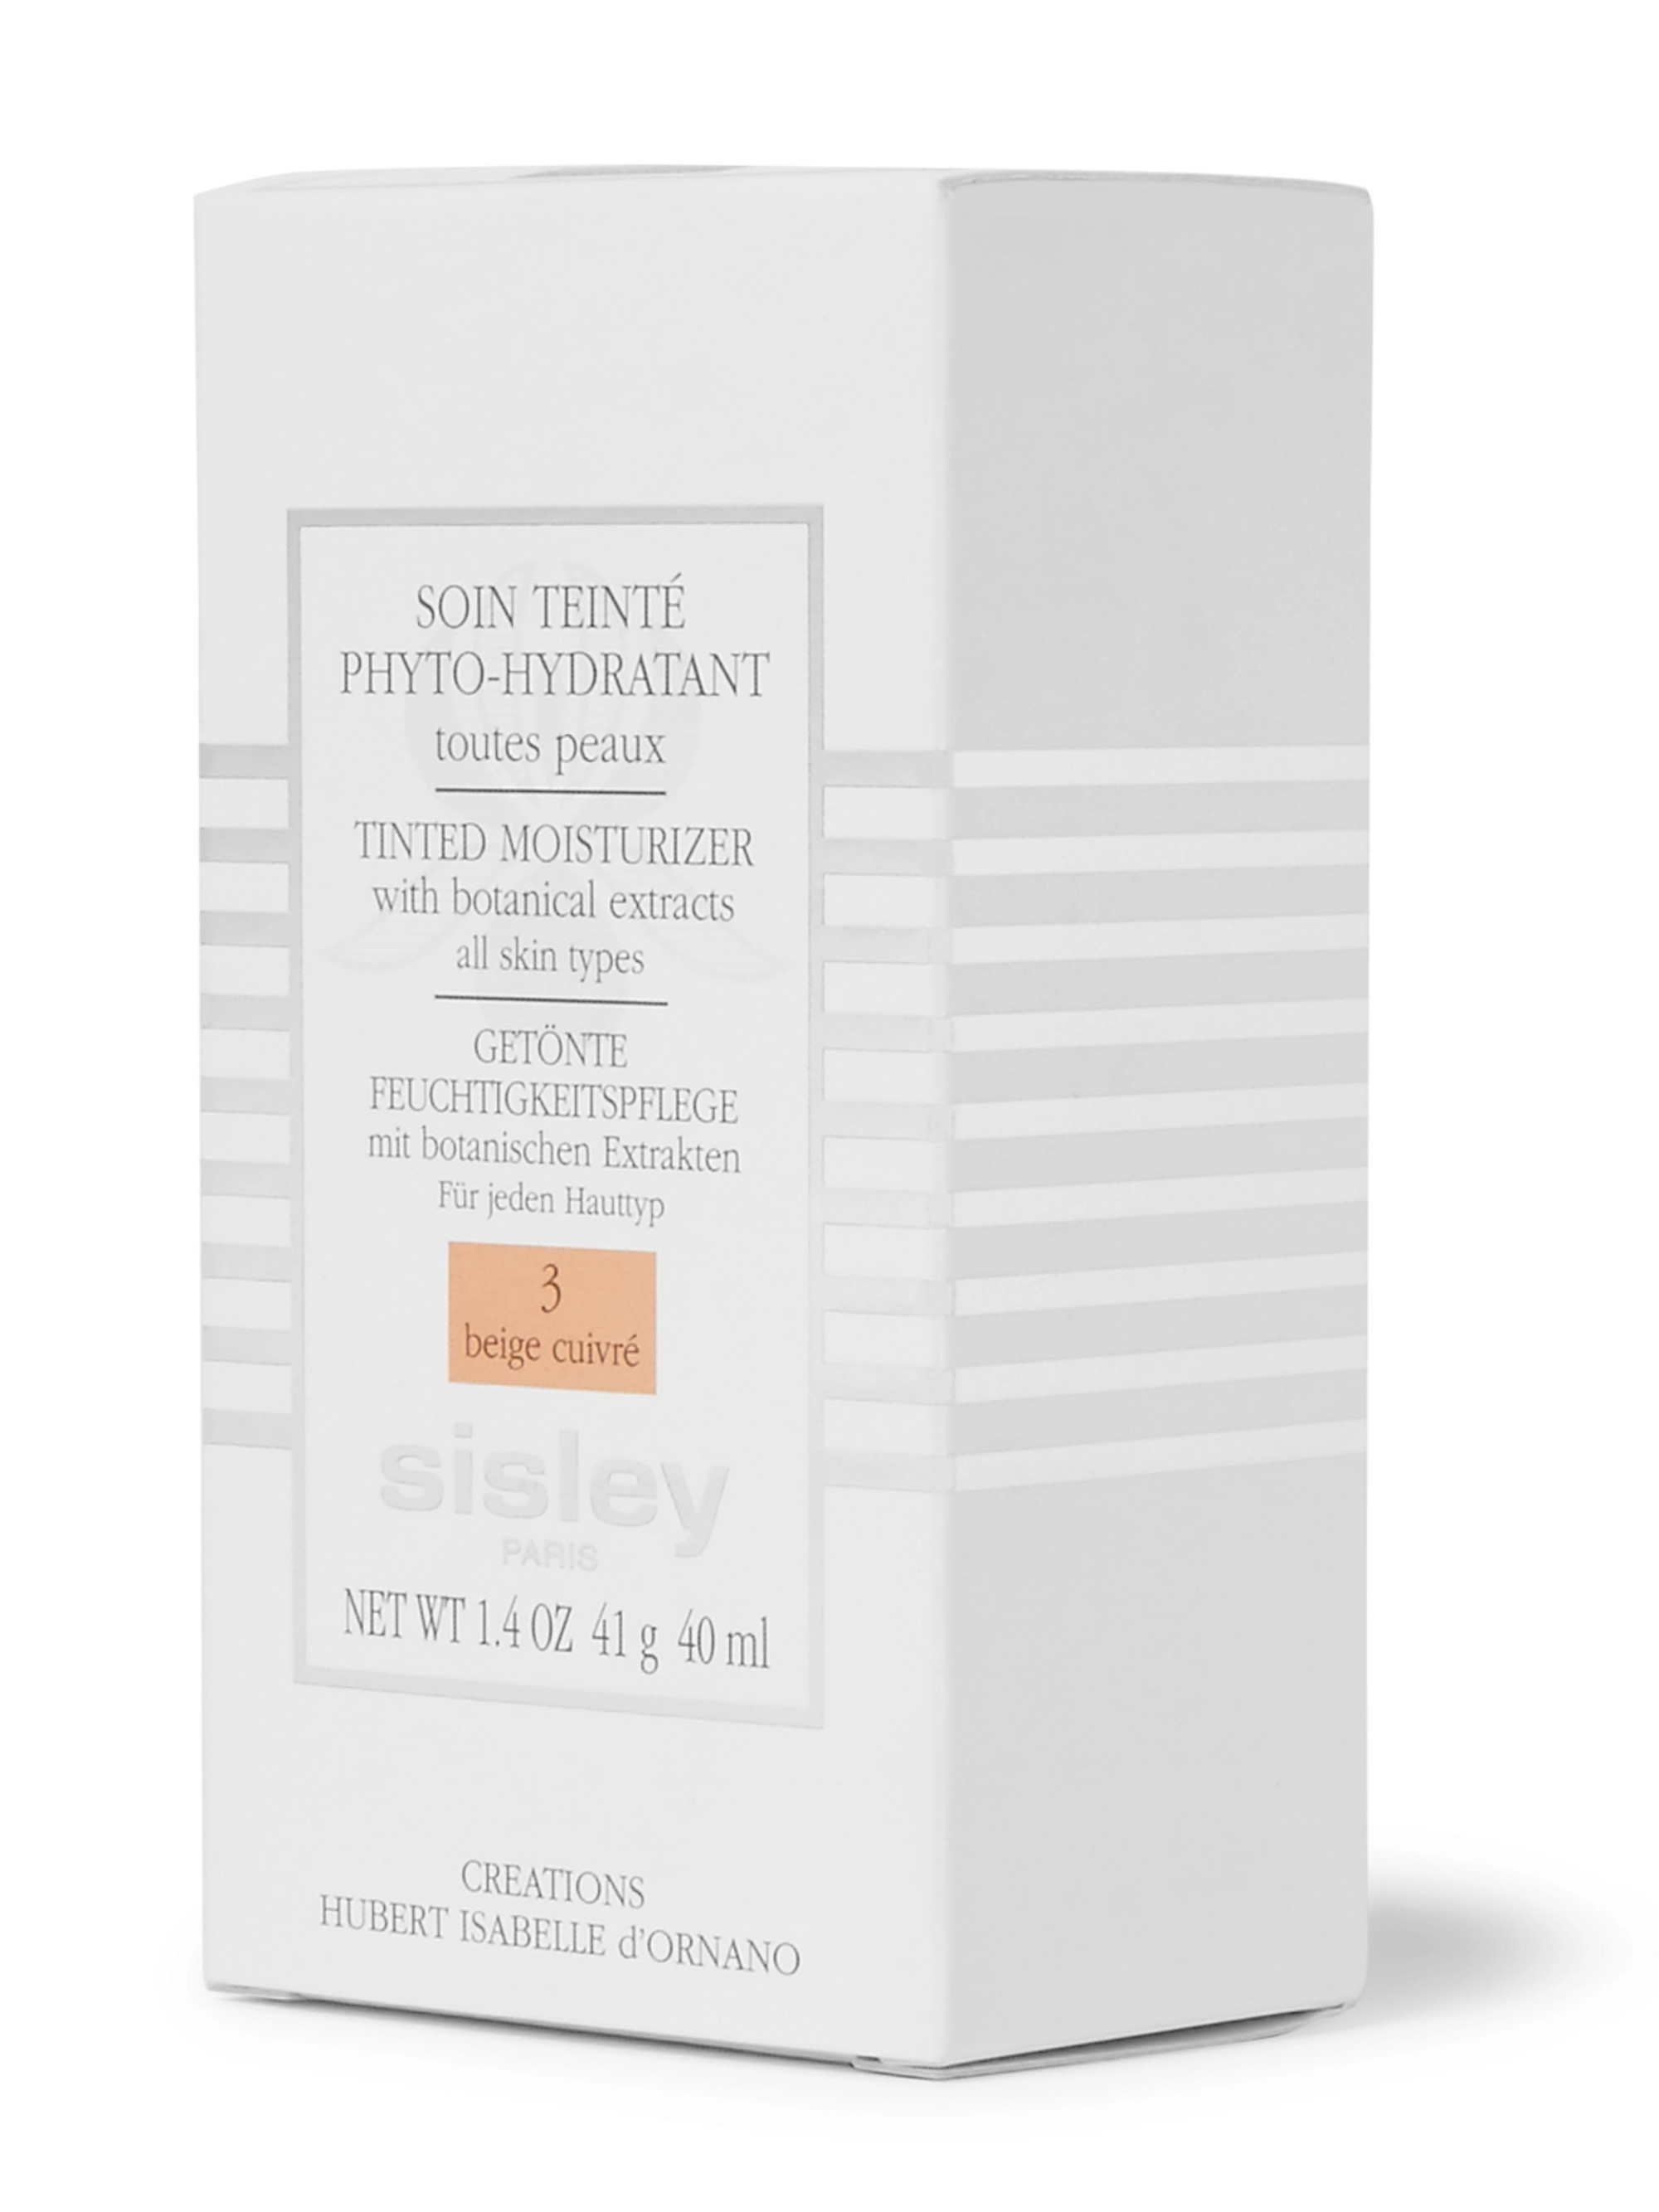 Sisley - Paris Tinted Moisturizer with Botanical Extracts - N3 Beige Cuivré, 40ml